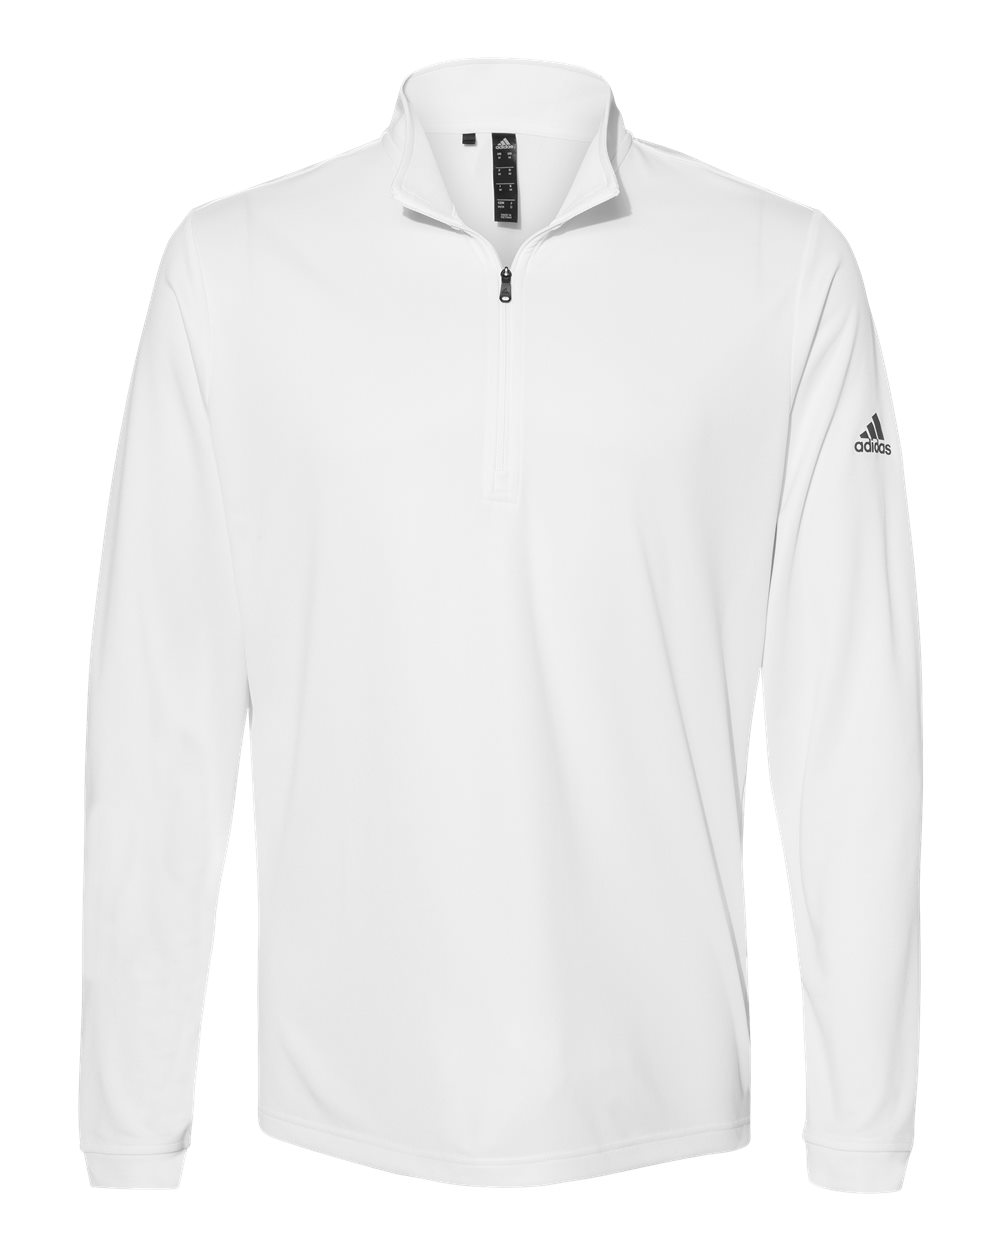 Adidas-Mens-Lightweight-Quarter-Zip-Pullover-Shirt-polyester-A401-up-to-4XL miniature 24